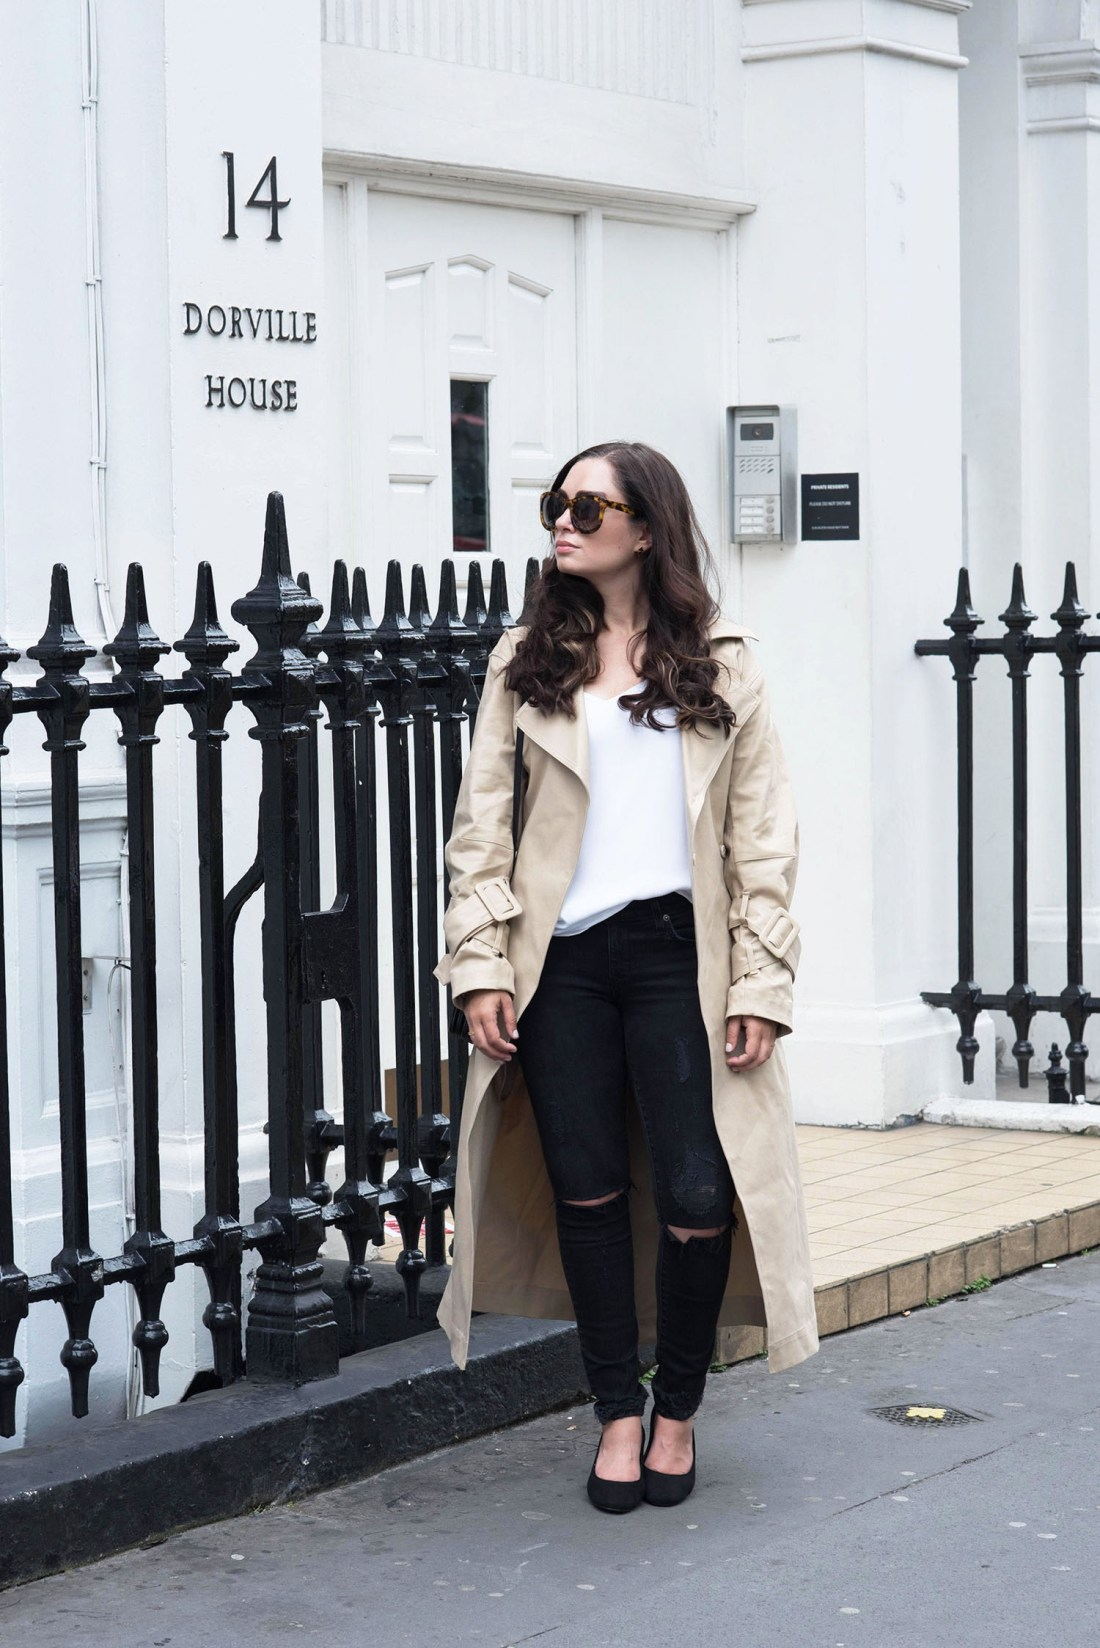 Fashion blogger Cee Fardoe of Coco & Vera stands at Dorville House in London wearing an H&M trench coat and Express Barcelona tank